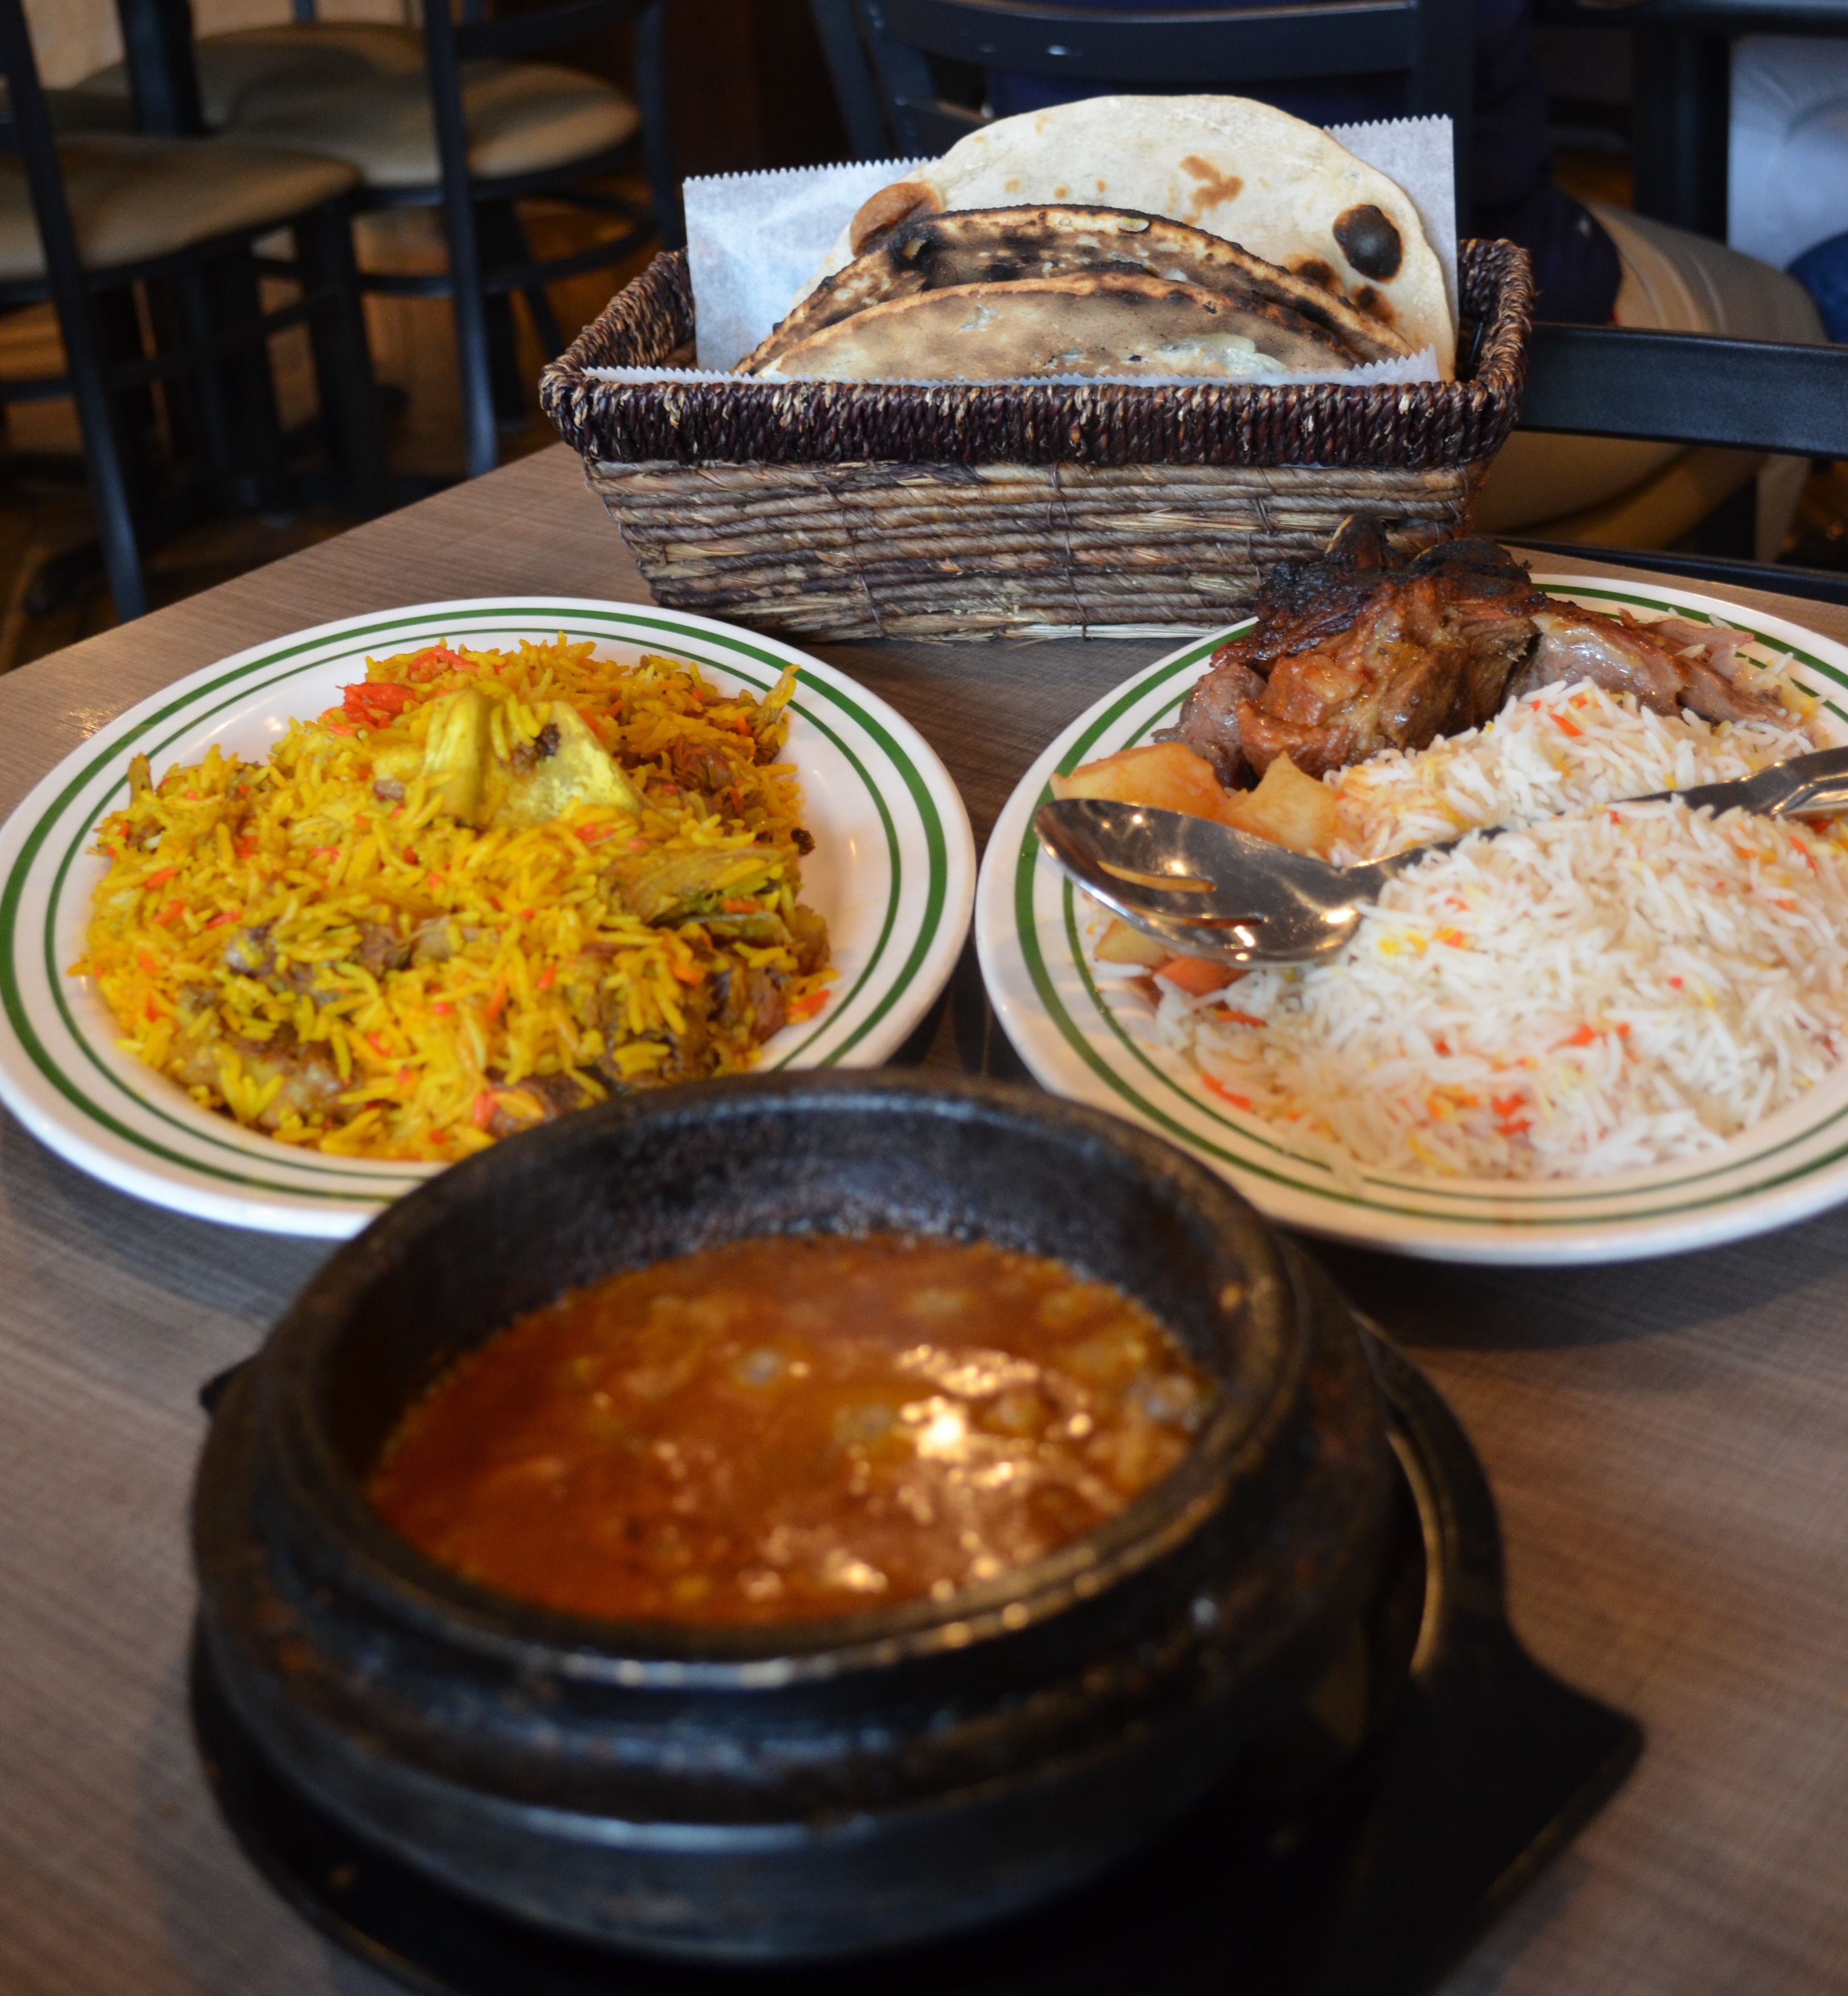 Photo of fahseh, lamb, and rice dishes.